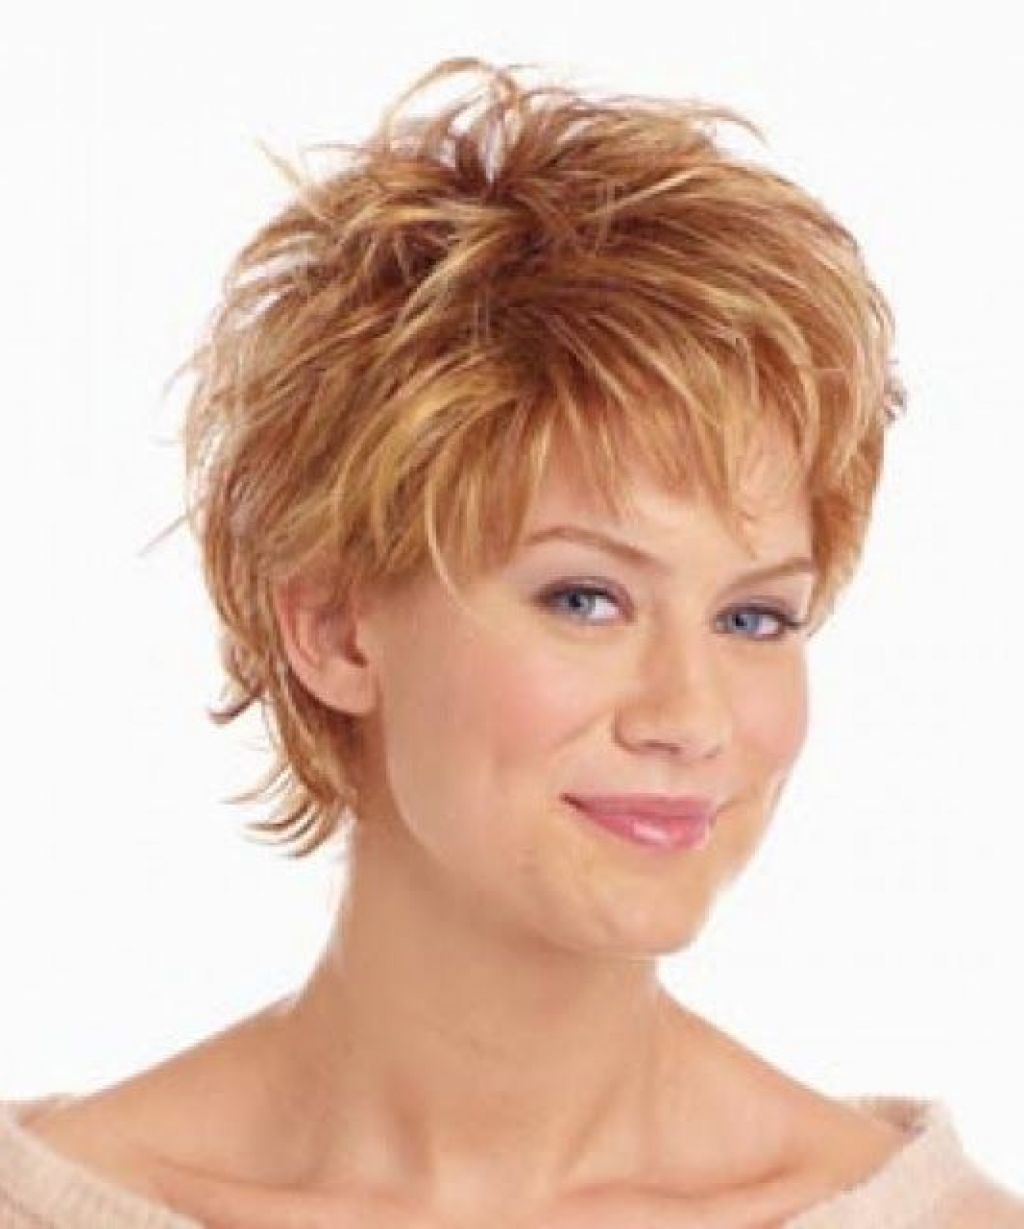 Short Curly Gray Hairstyles For Women Over 50 Google Search Cool